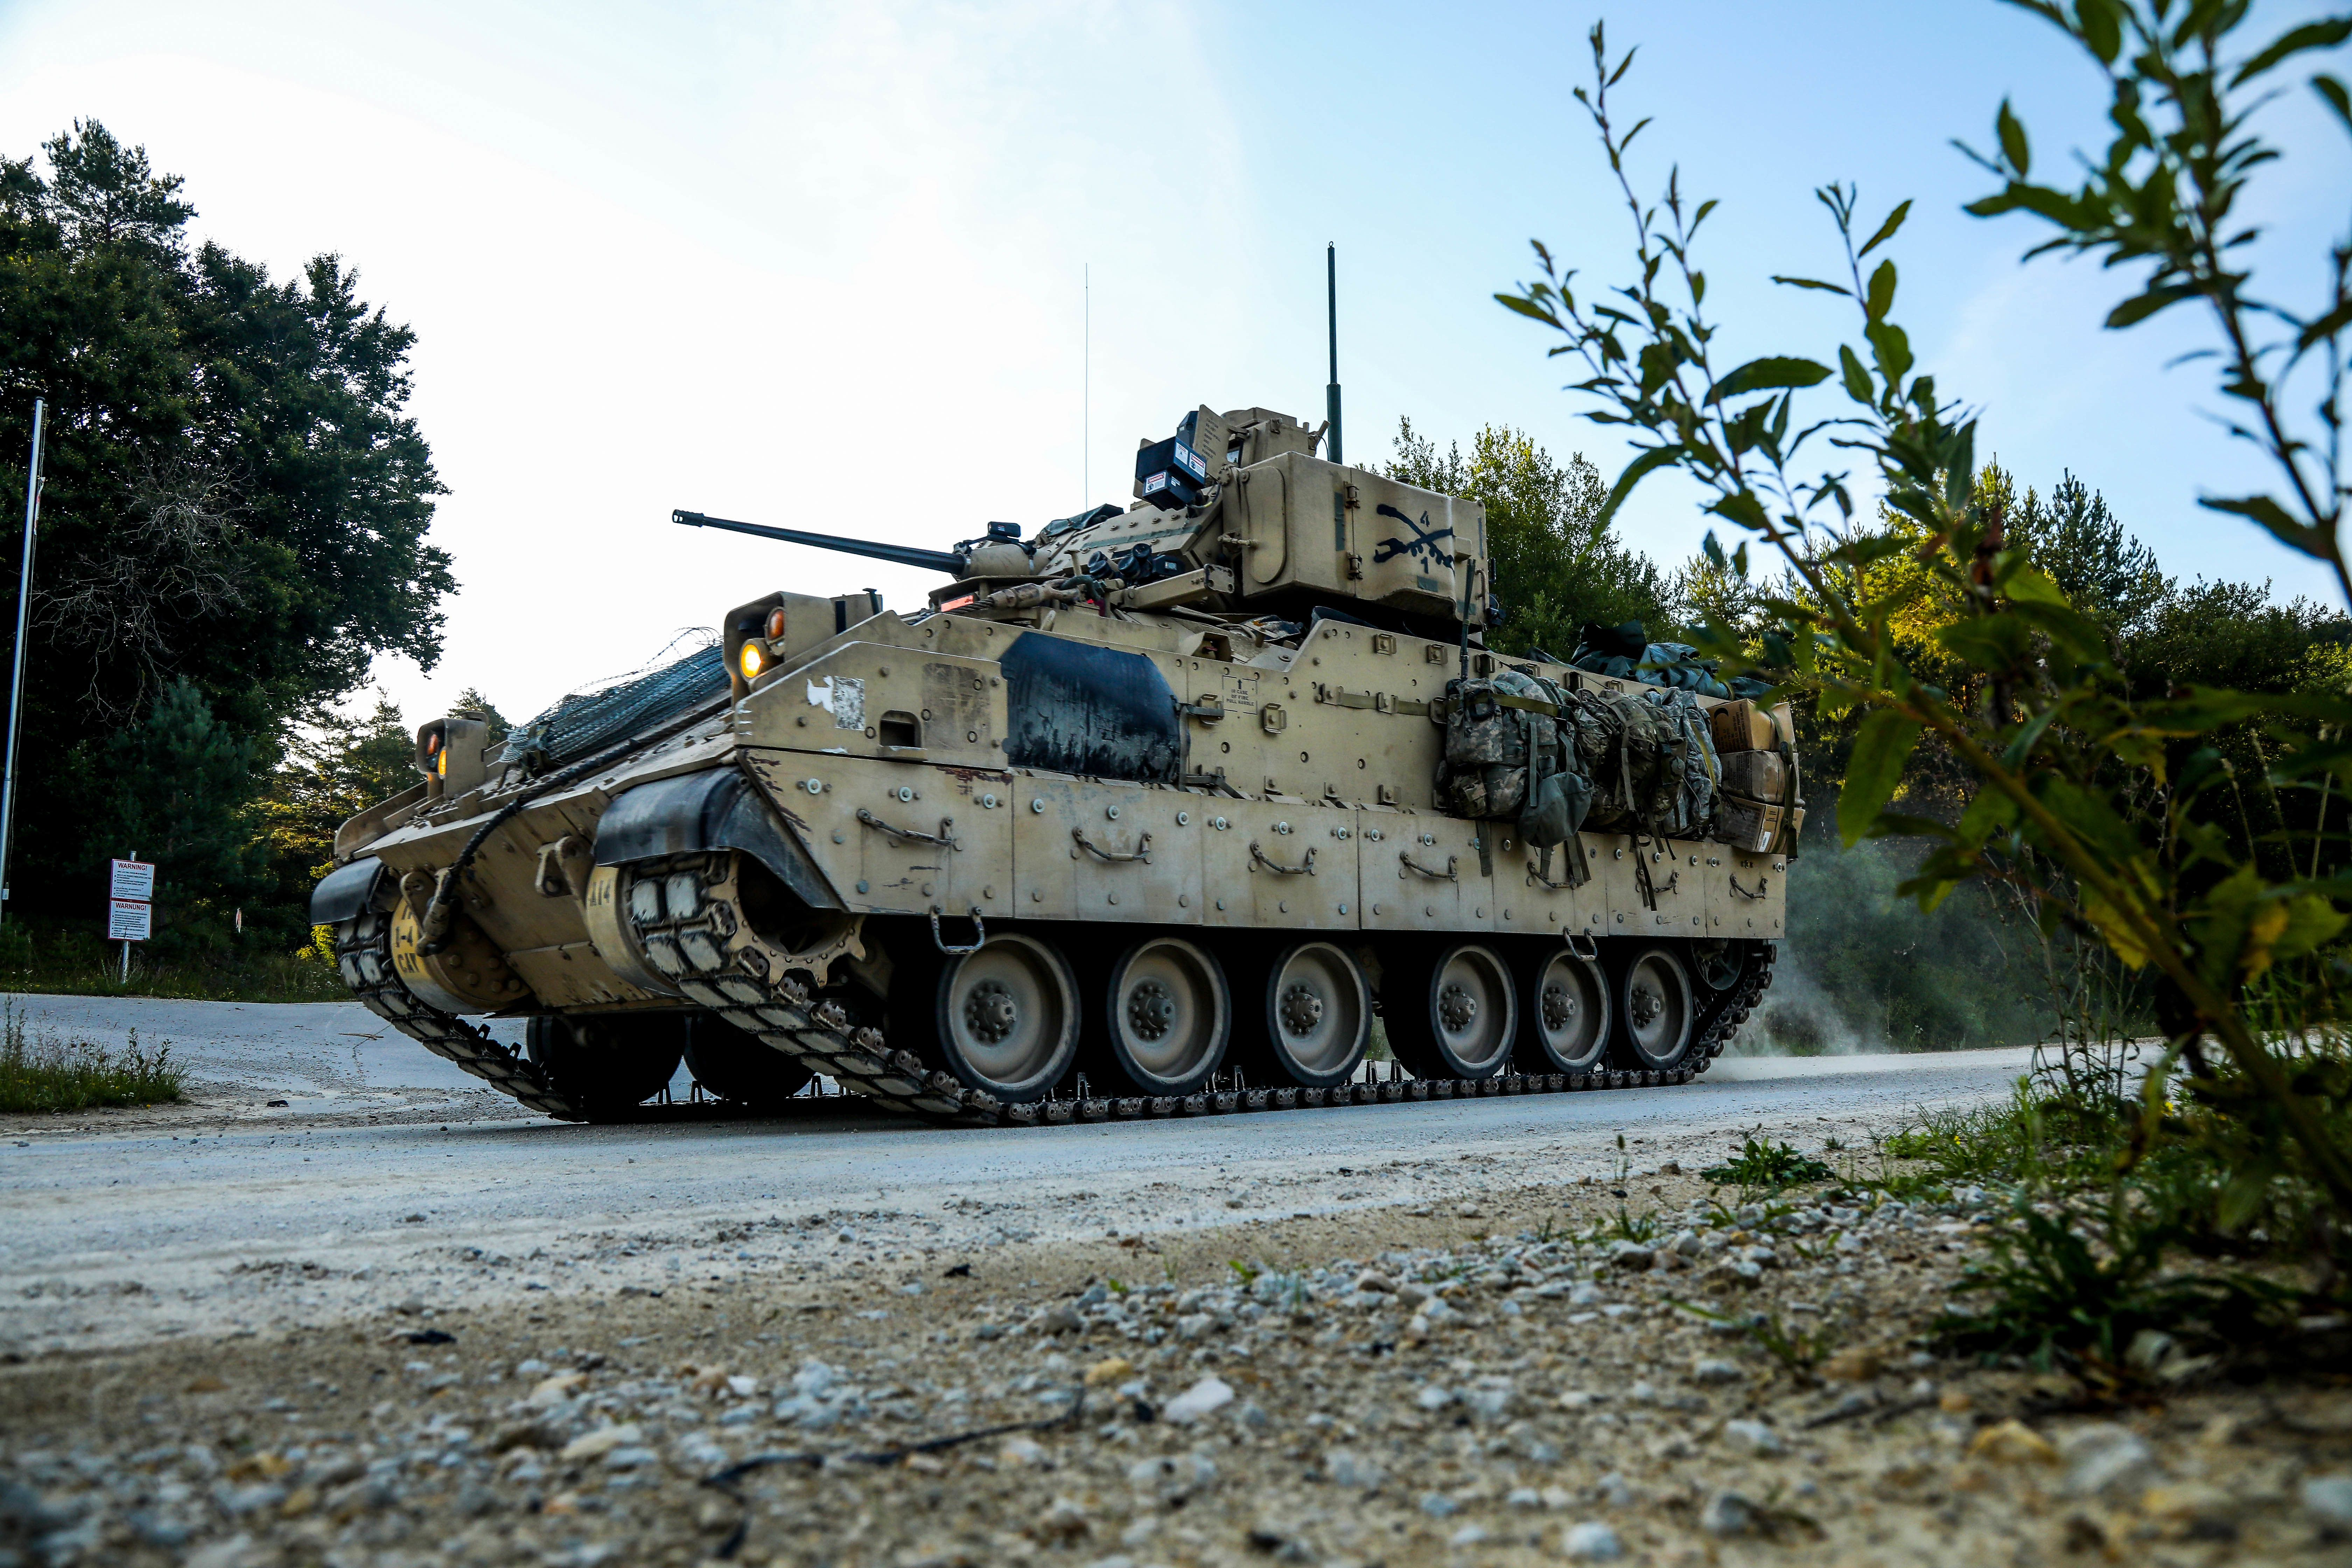 The U.S. Army Keeps Trying—and Failing—To Replace the M2 Bradley